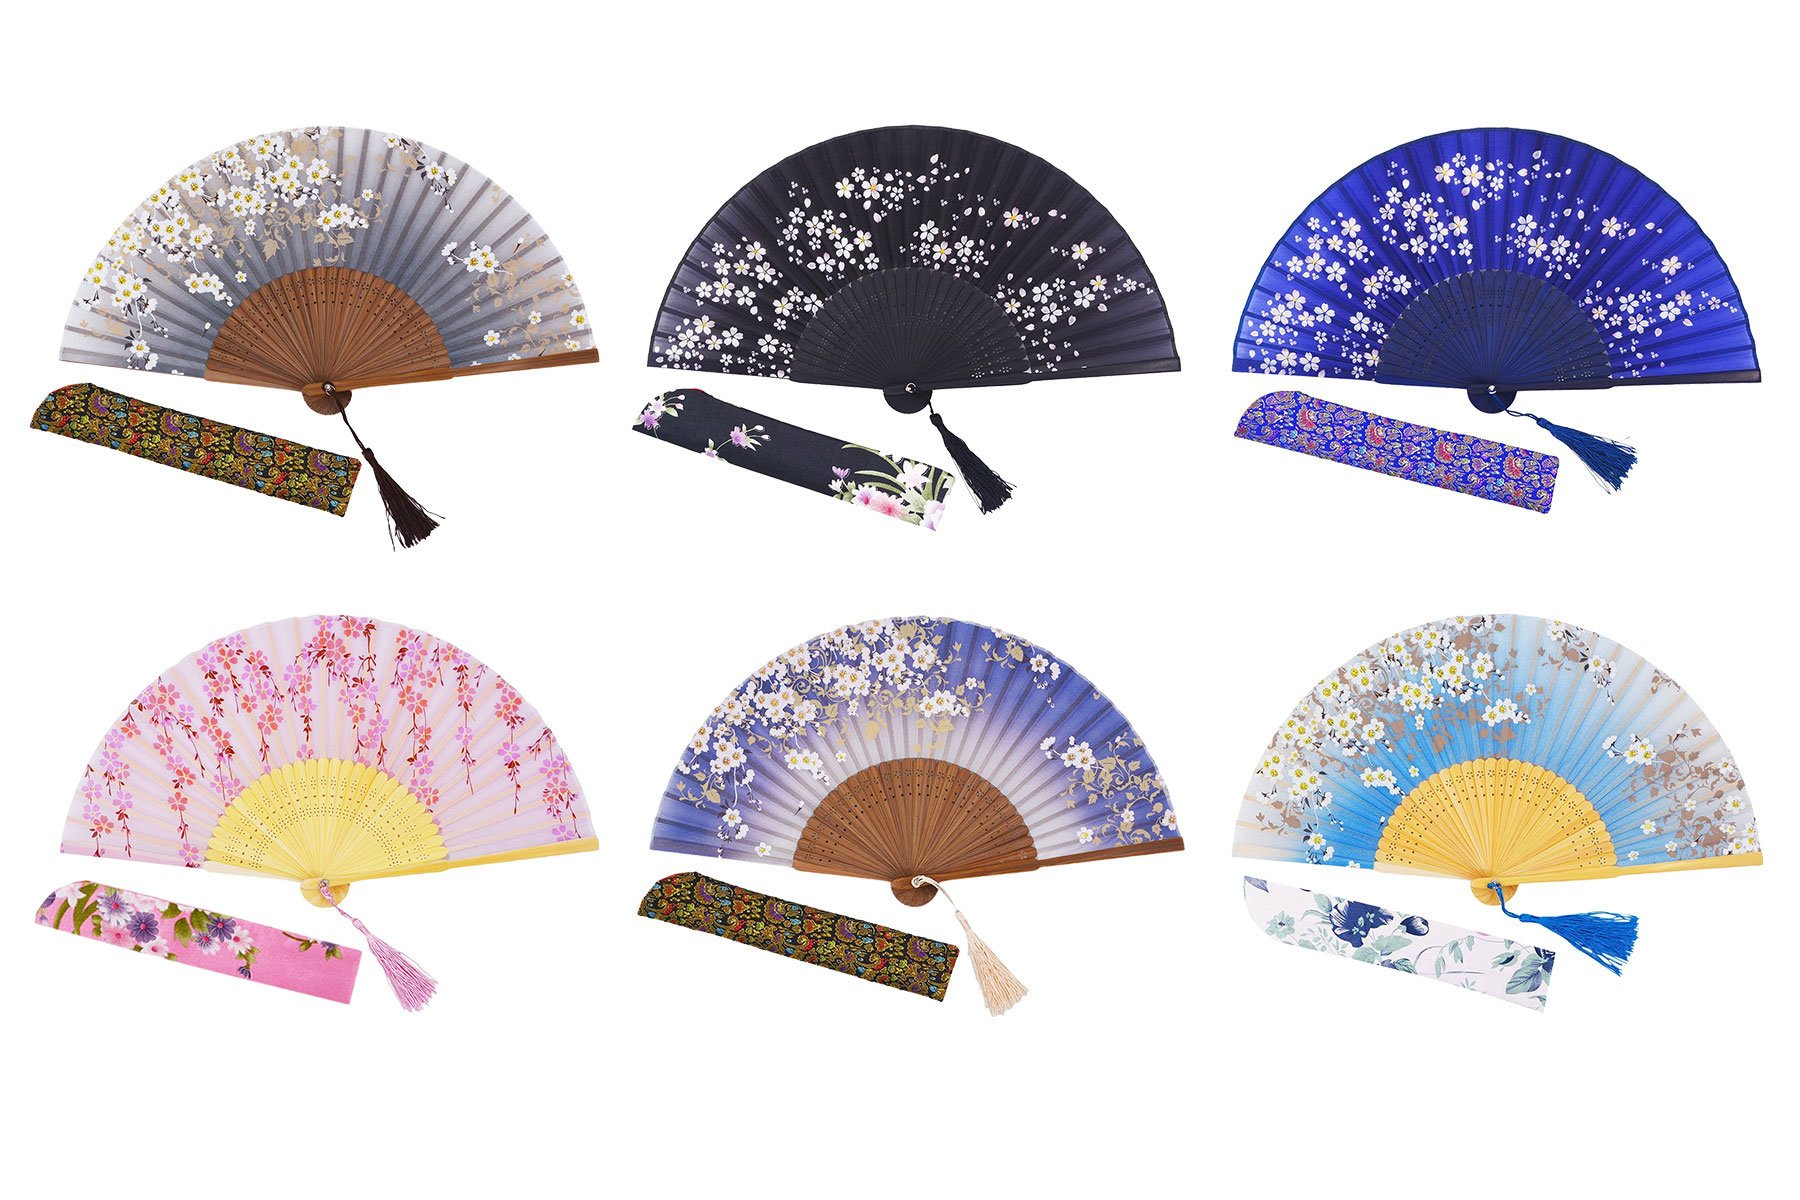 Amajiji Charming Elegant Modern Woman Handmade Bamboo Silk 8.27'' (21cm) Folding Pocket Purse Hand Fan (Mixed Colors, 6pcs)